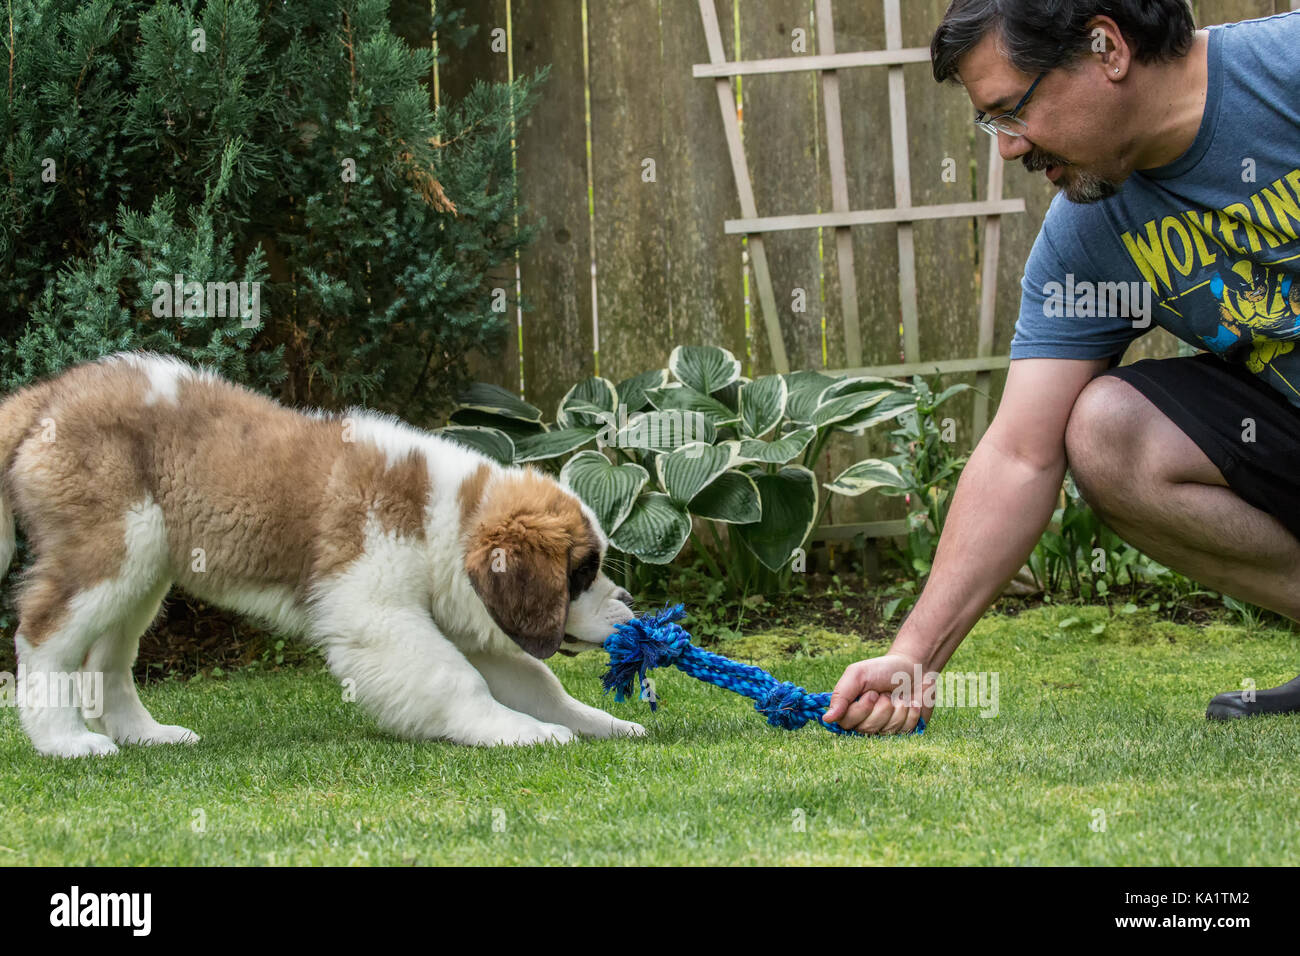 Three month old Saint Bernard puppy 'Mauna Kea' playing tug with a rope toy with his owner in their yard - Stock Image